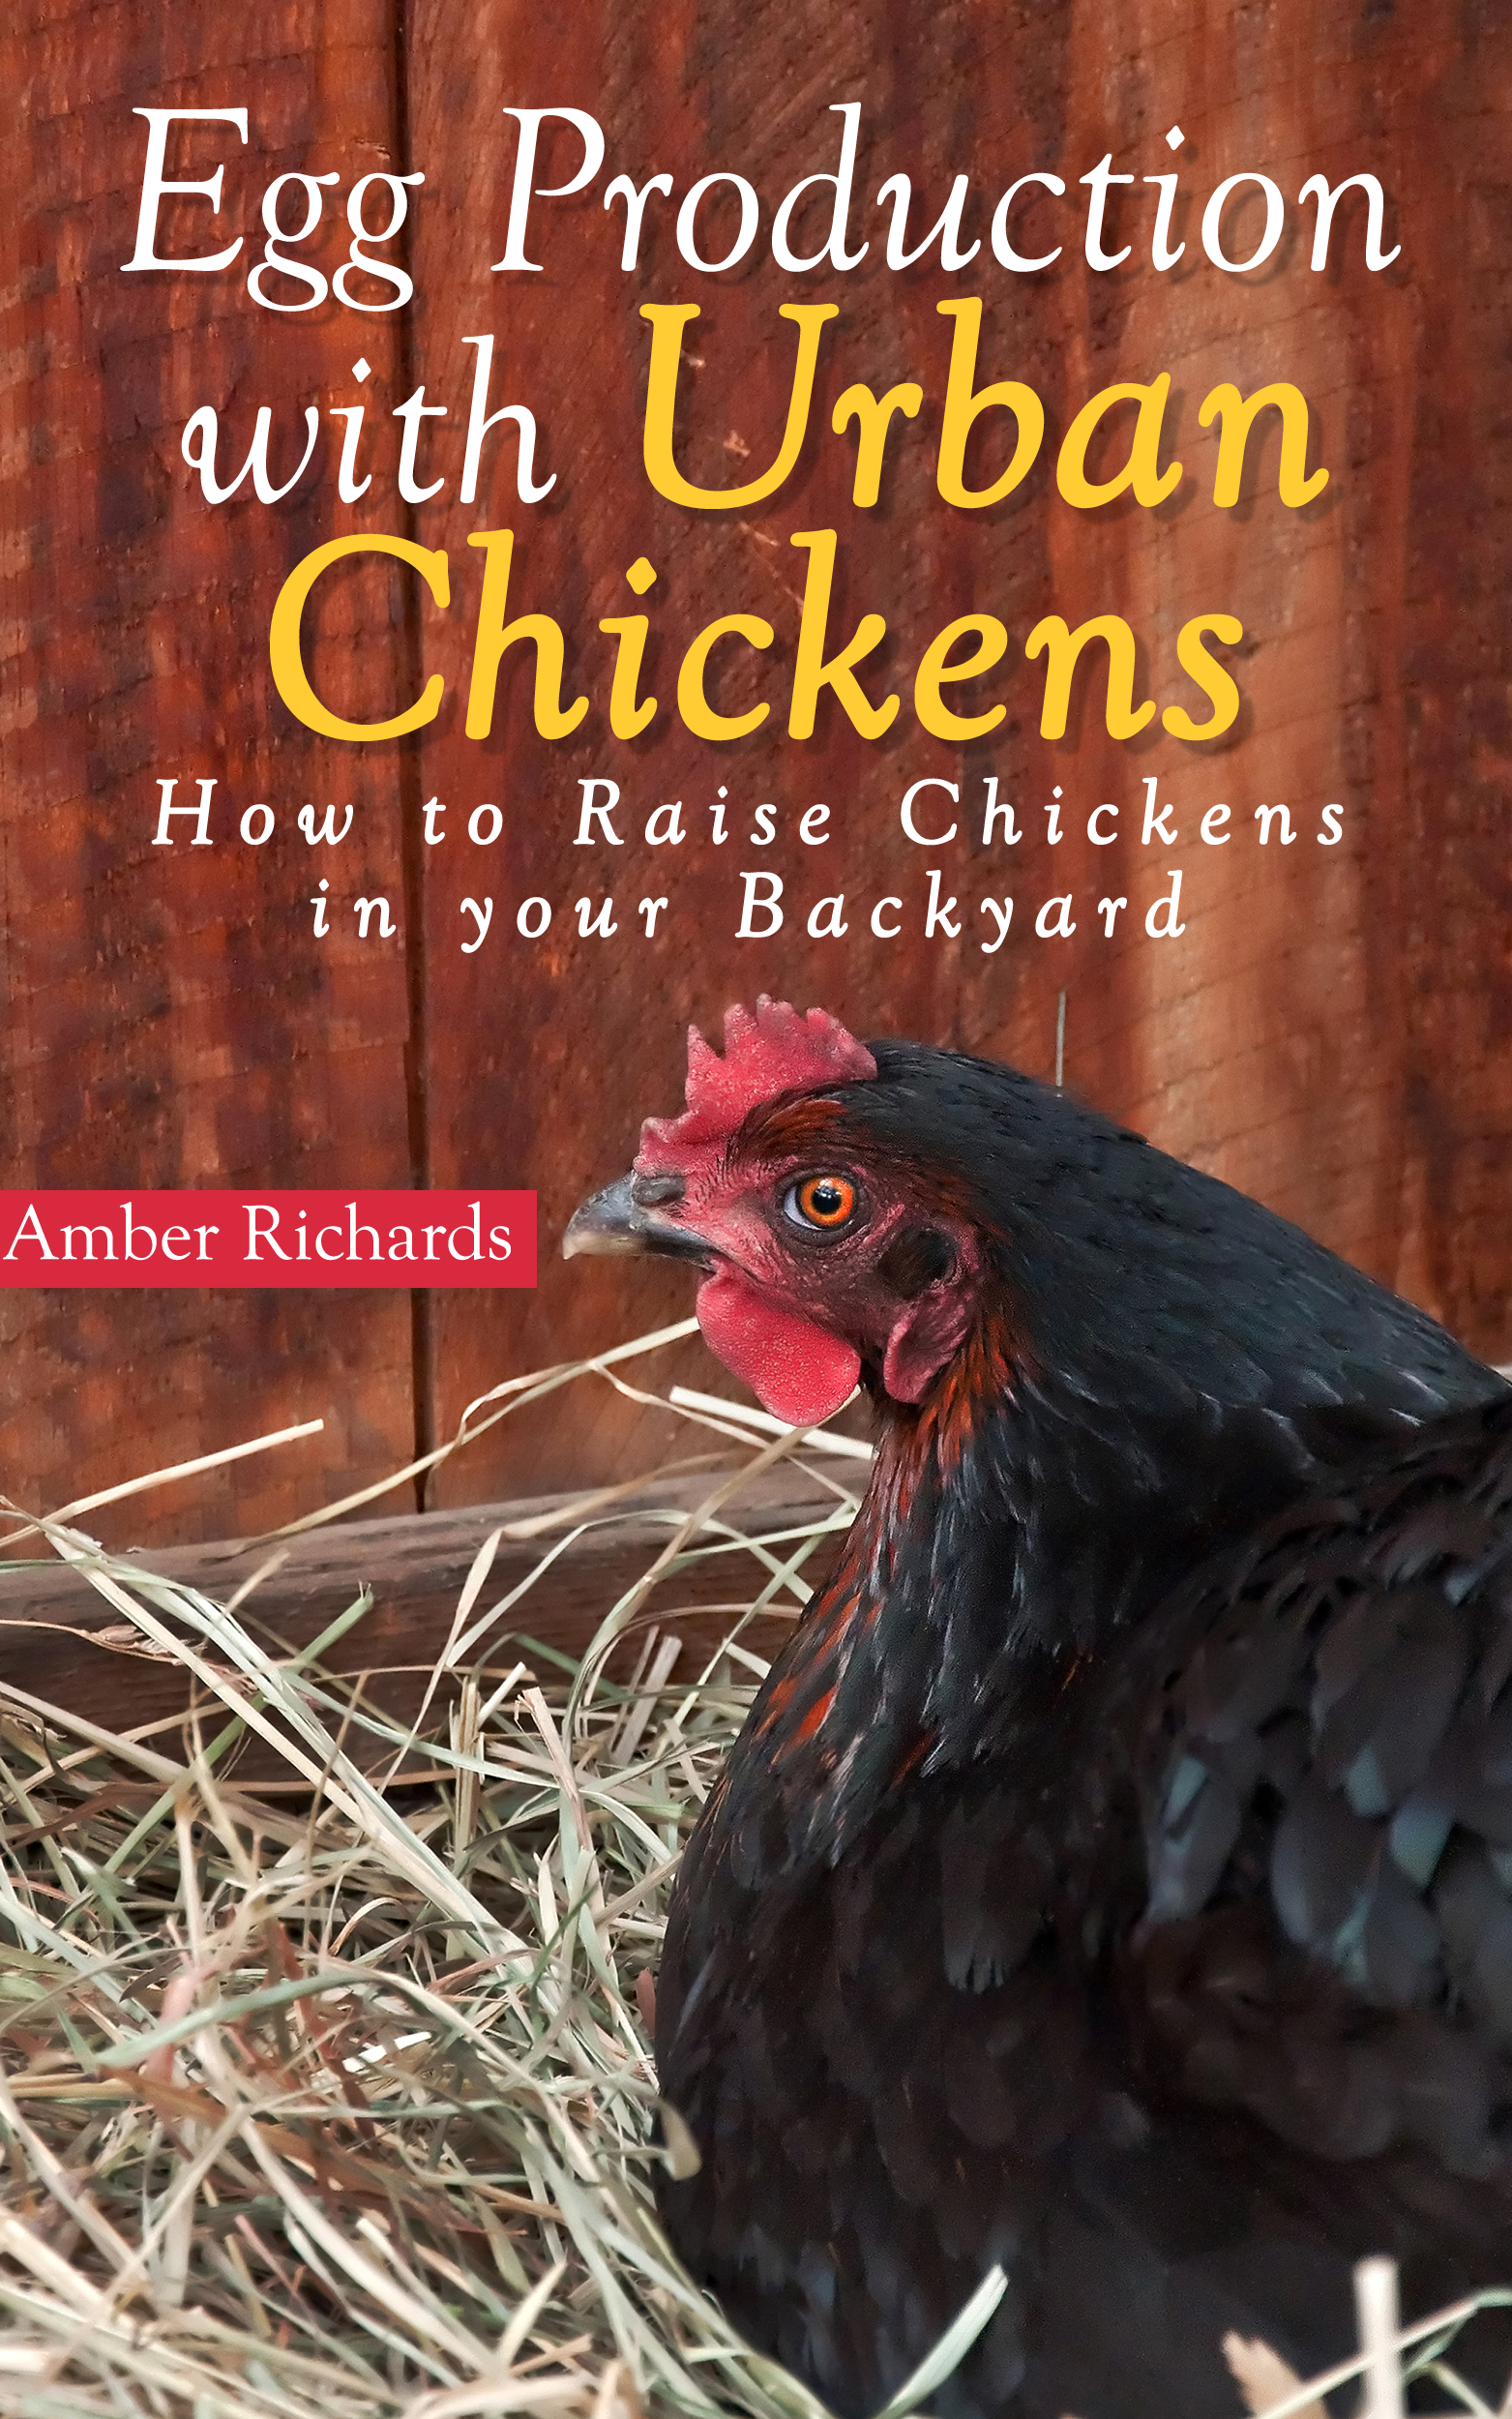 Egg production with urban chickens: how to raise chickens in your backyard